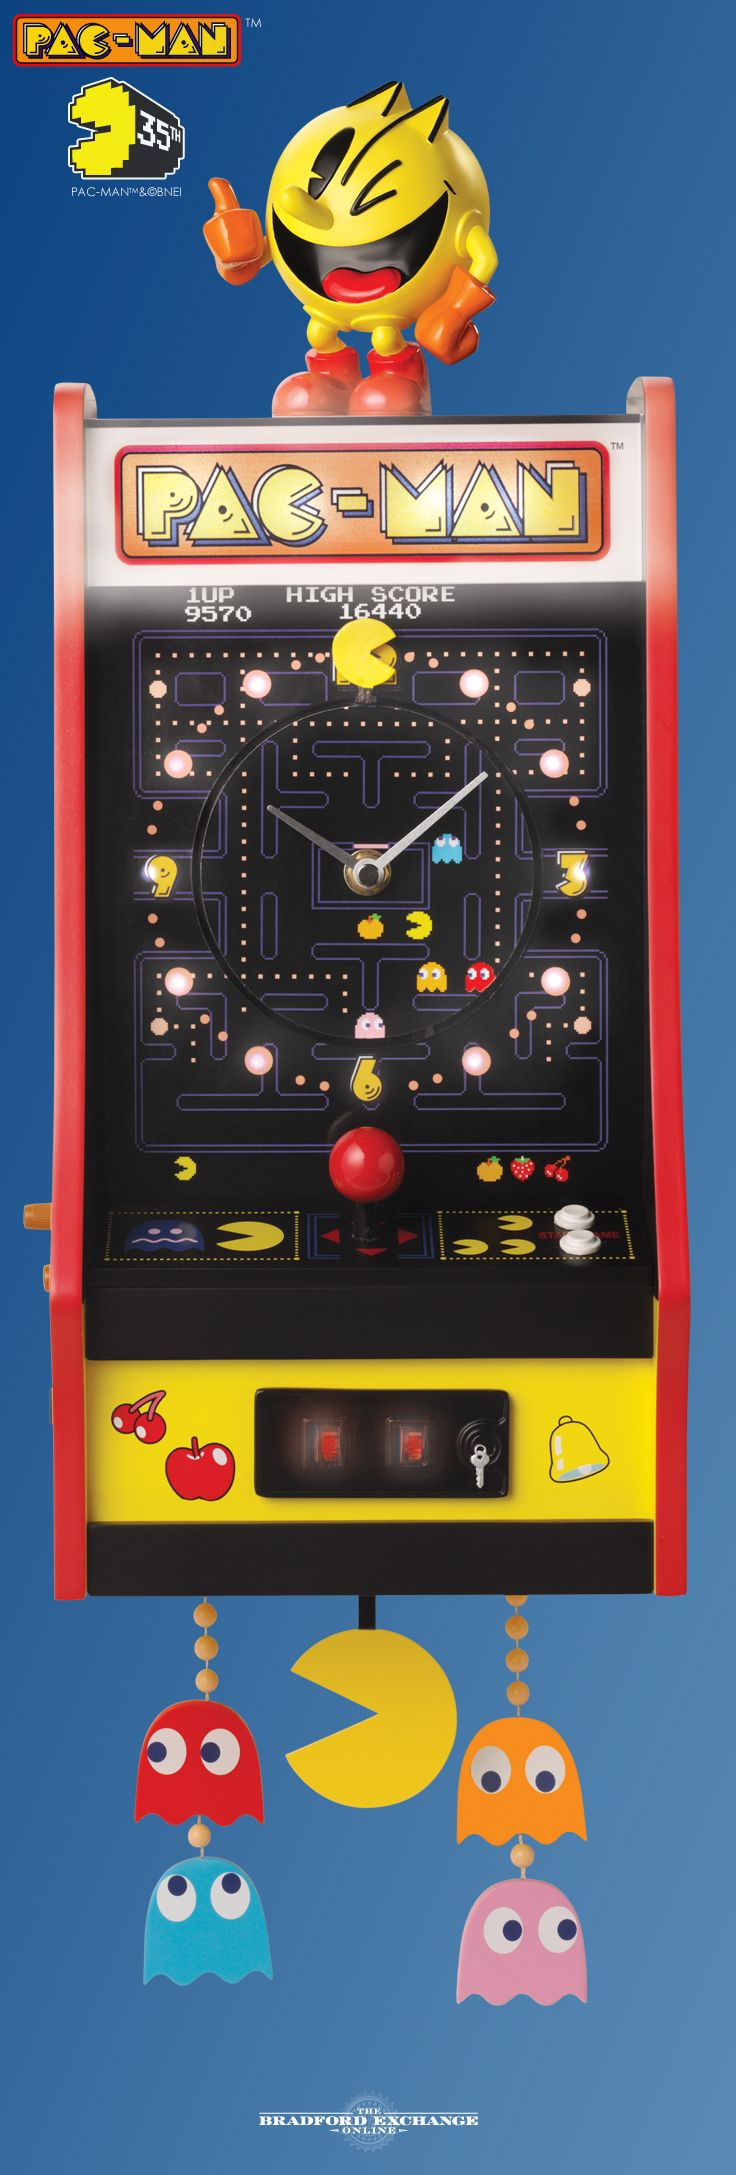 33 best home decor images on pinterest wall clocks zippo honor the legendary arcade sensation with this collectible pac man cuckoo clock it even amipublicfo Images